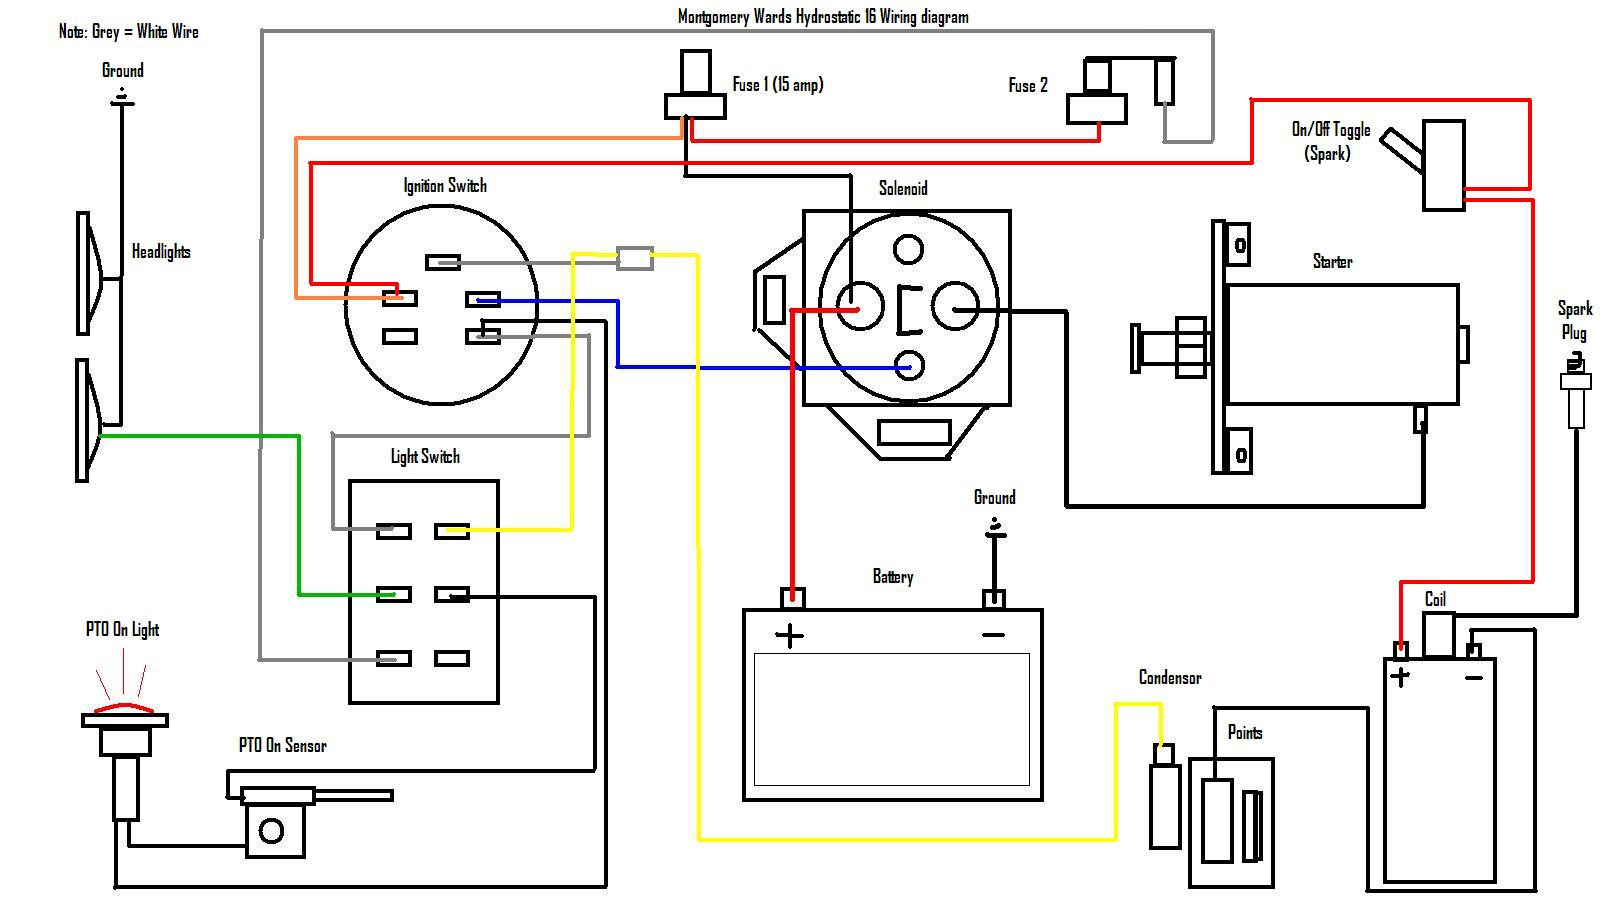 Click image for larger version Name: M.wards.wiring.diagram.original